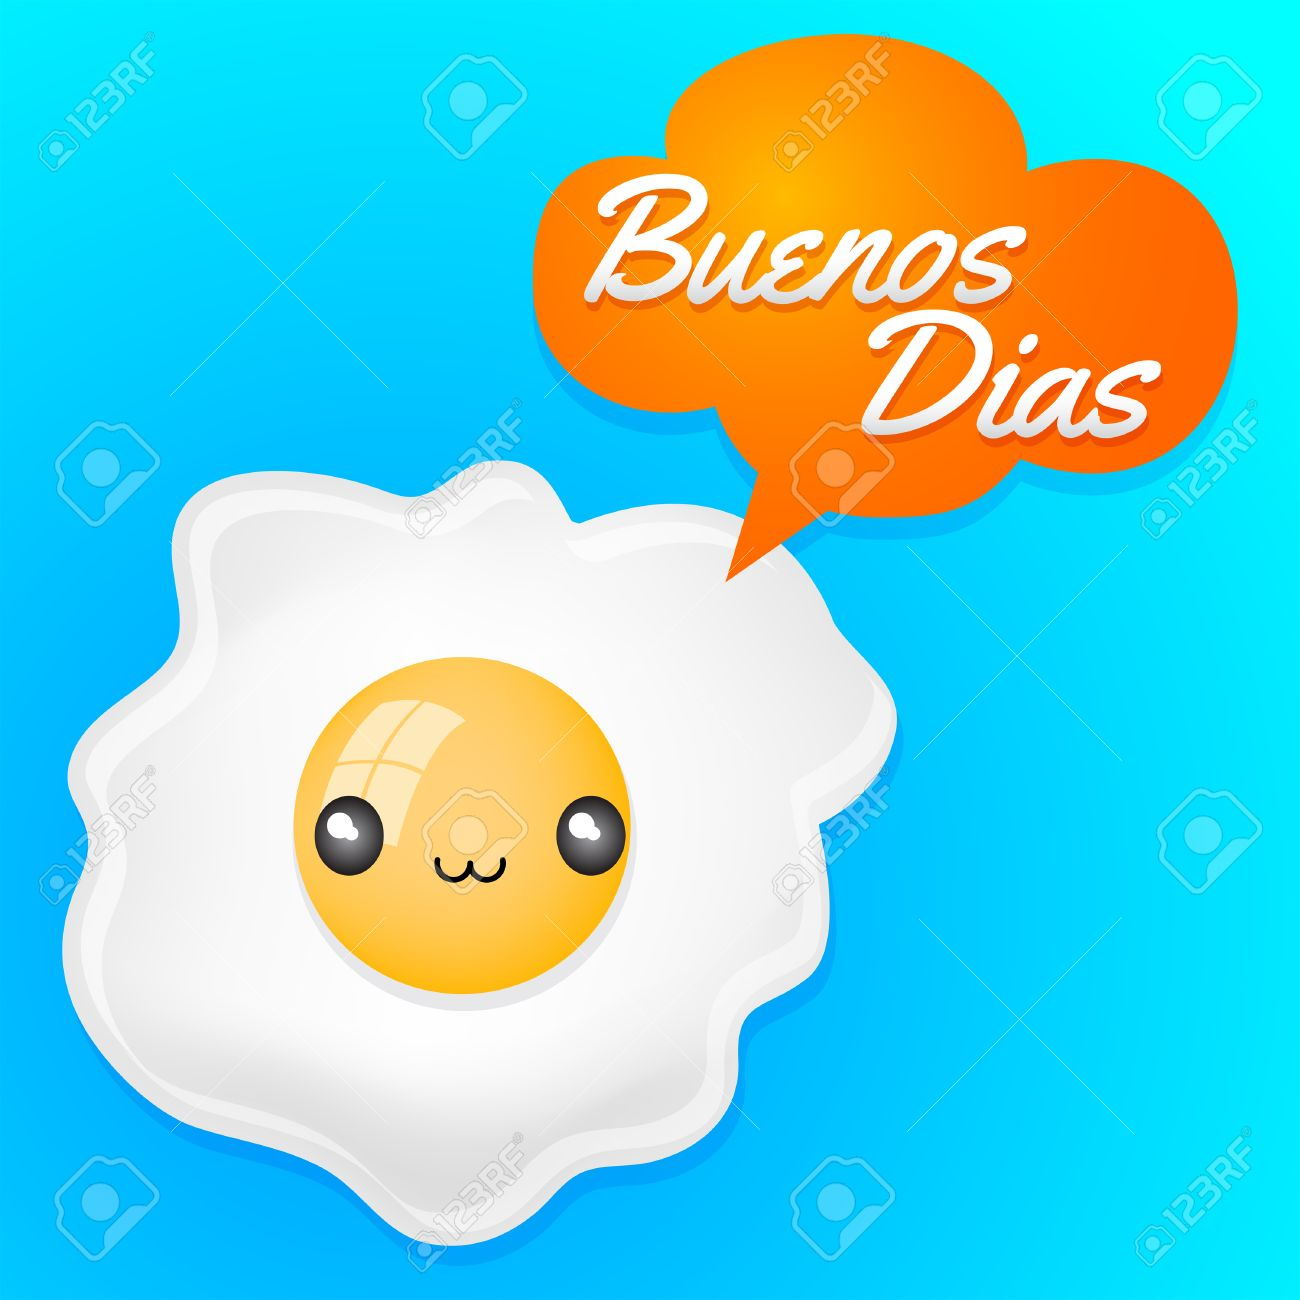 buenos dias good morning spanish text cute fried egg with balloon